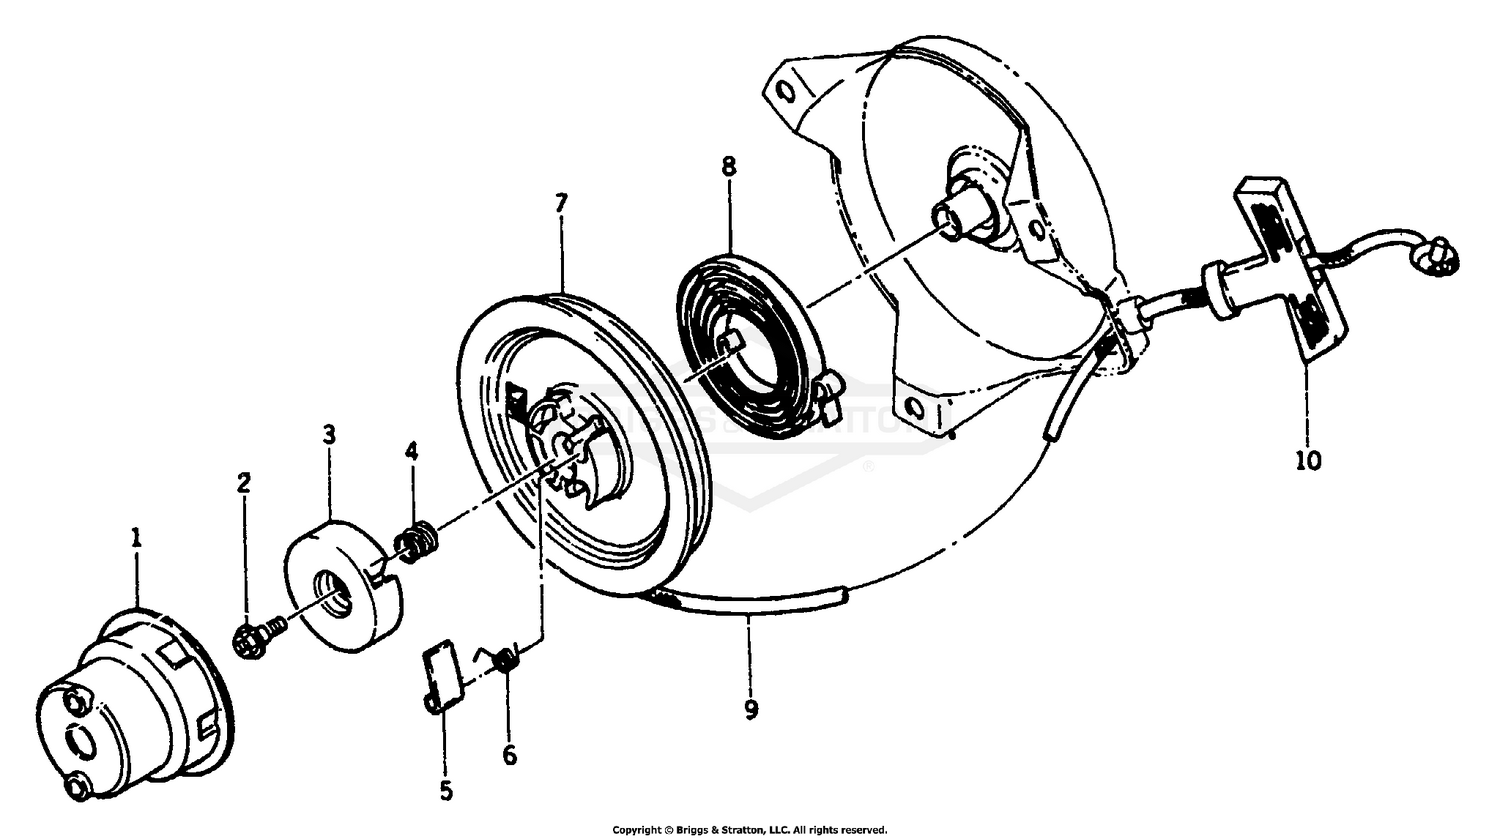 Wiring Diagram Database: Briggs And Stratton Recoil